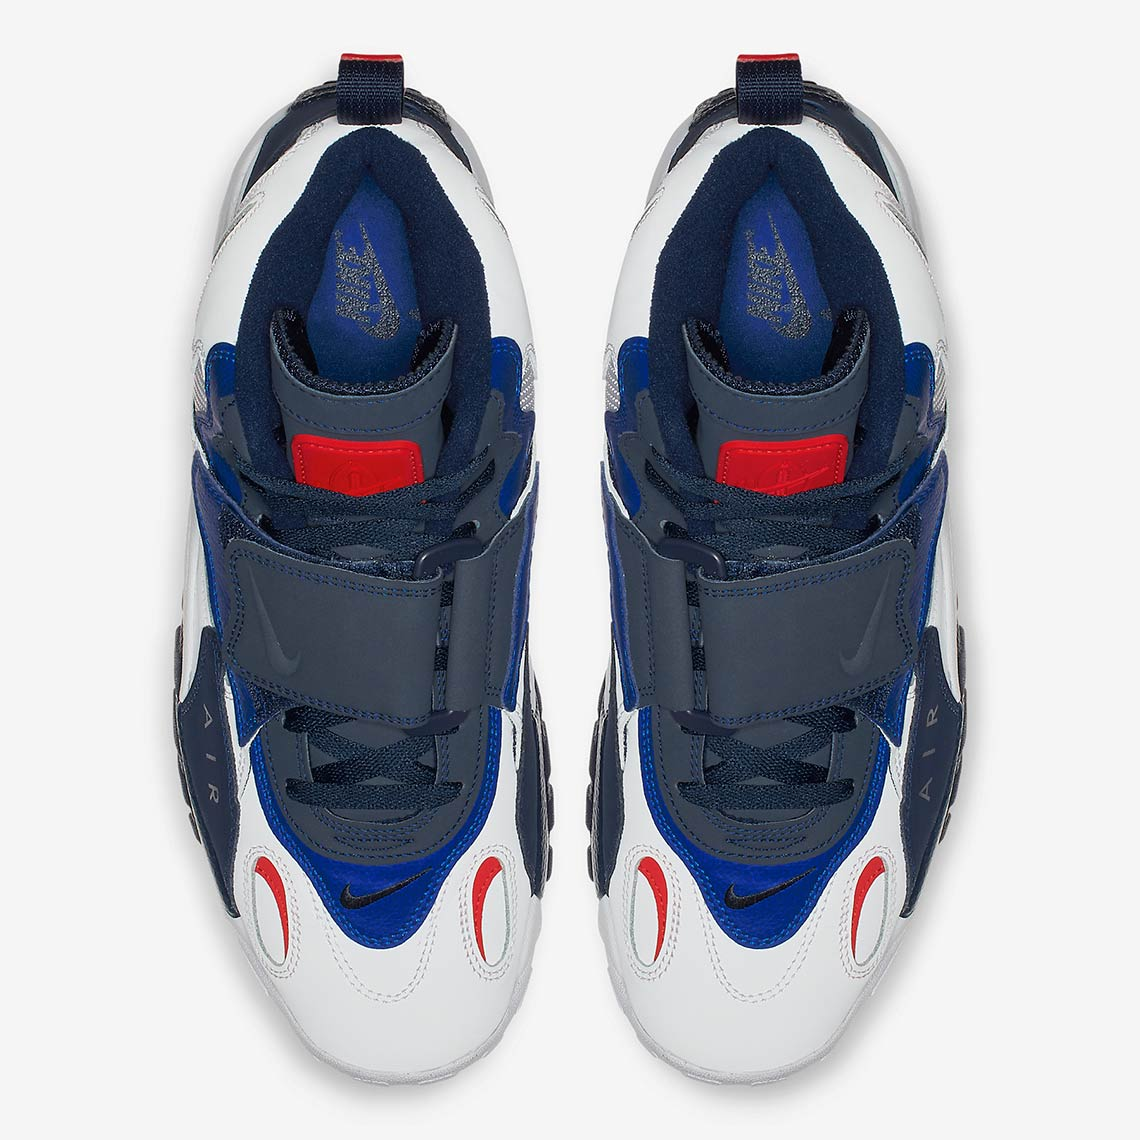 Nike Speed Turf Max New York Giants Available Now  d997c0ff92